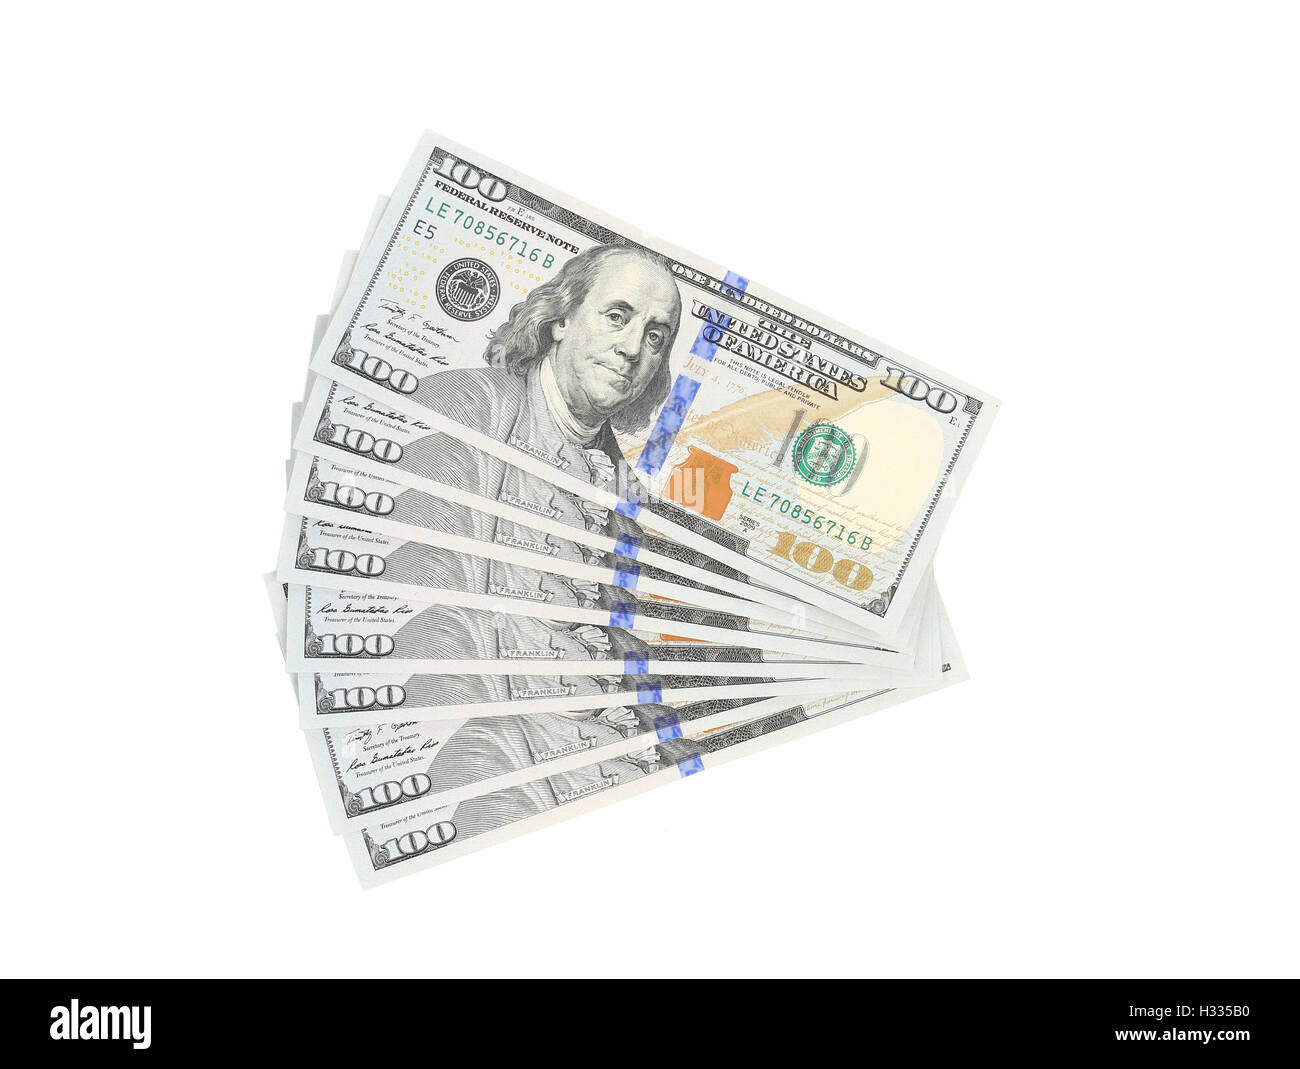 Fan of 100 dollars greenbacks. - Stock Image